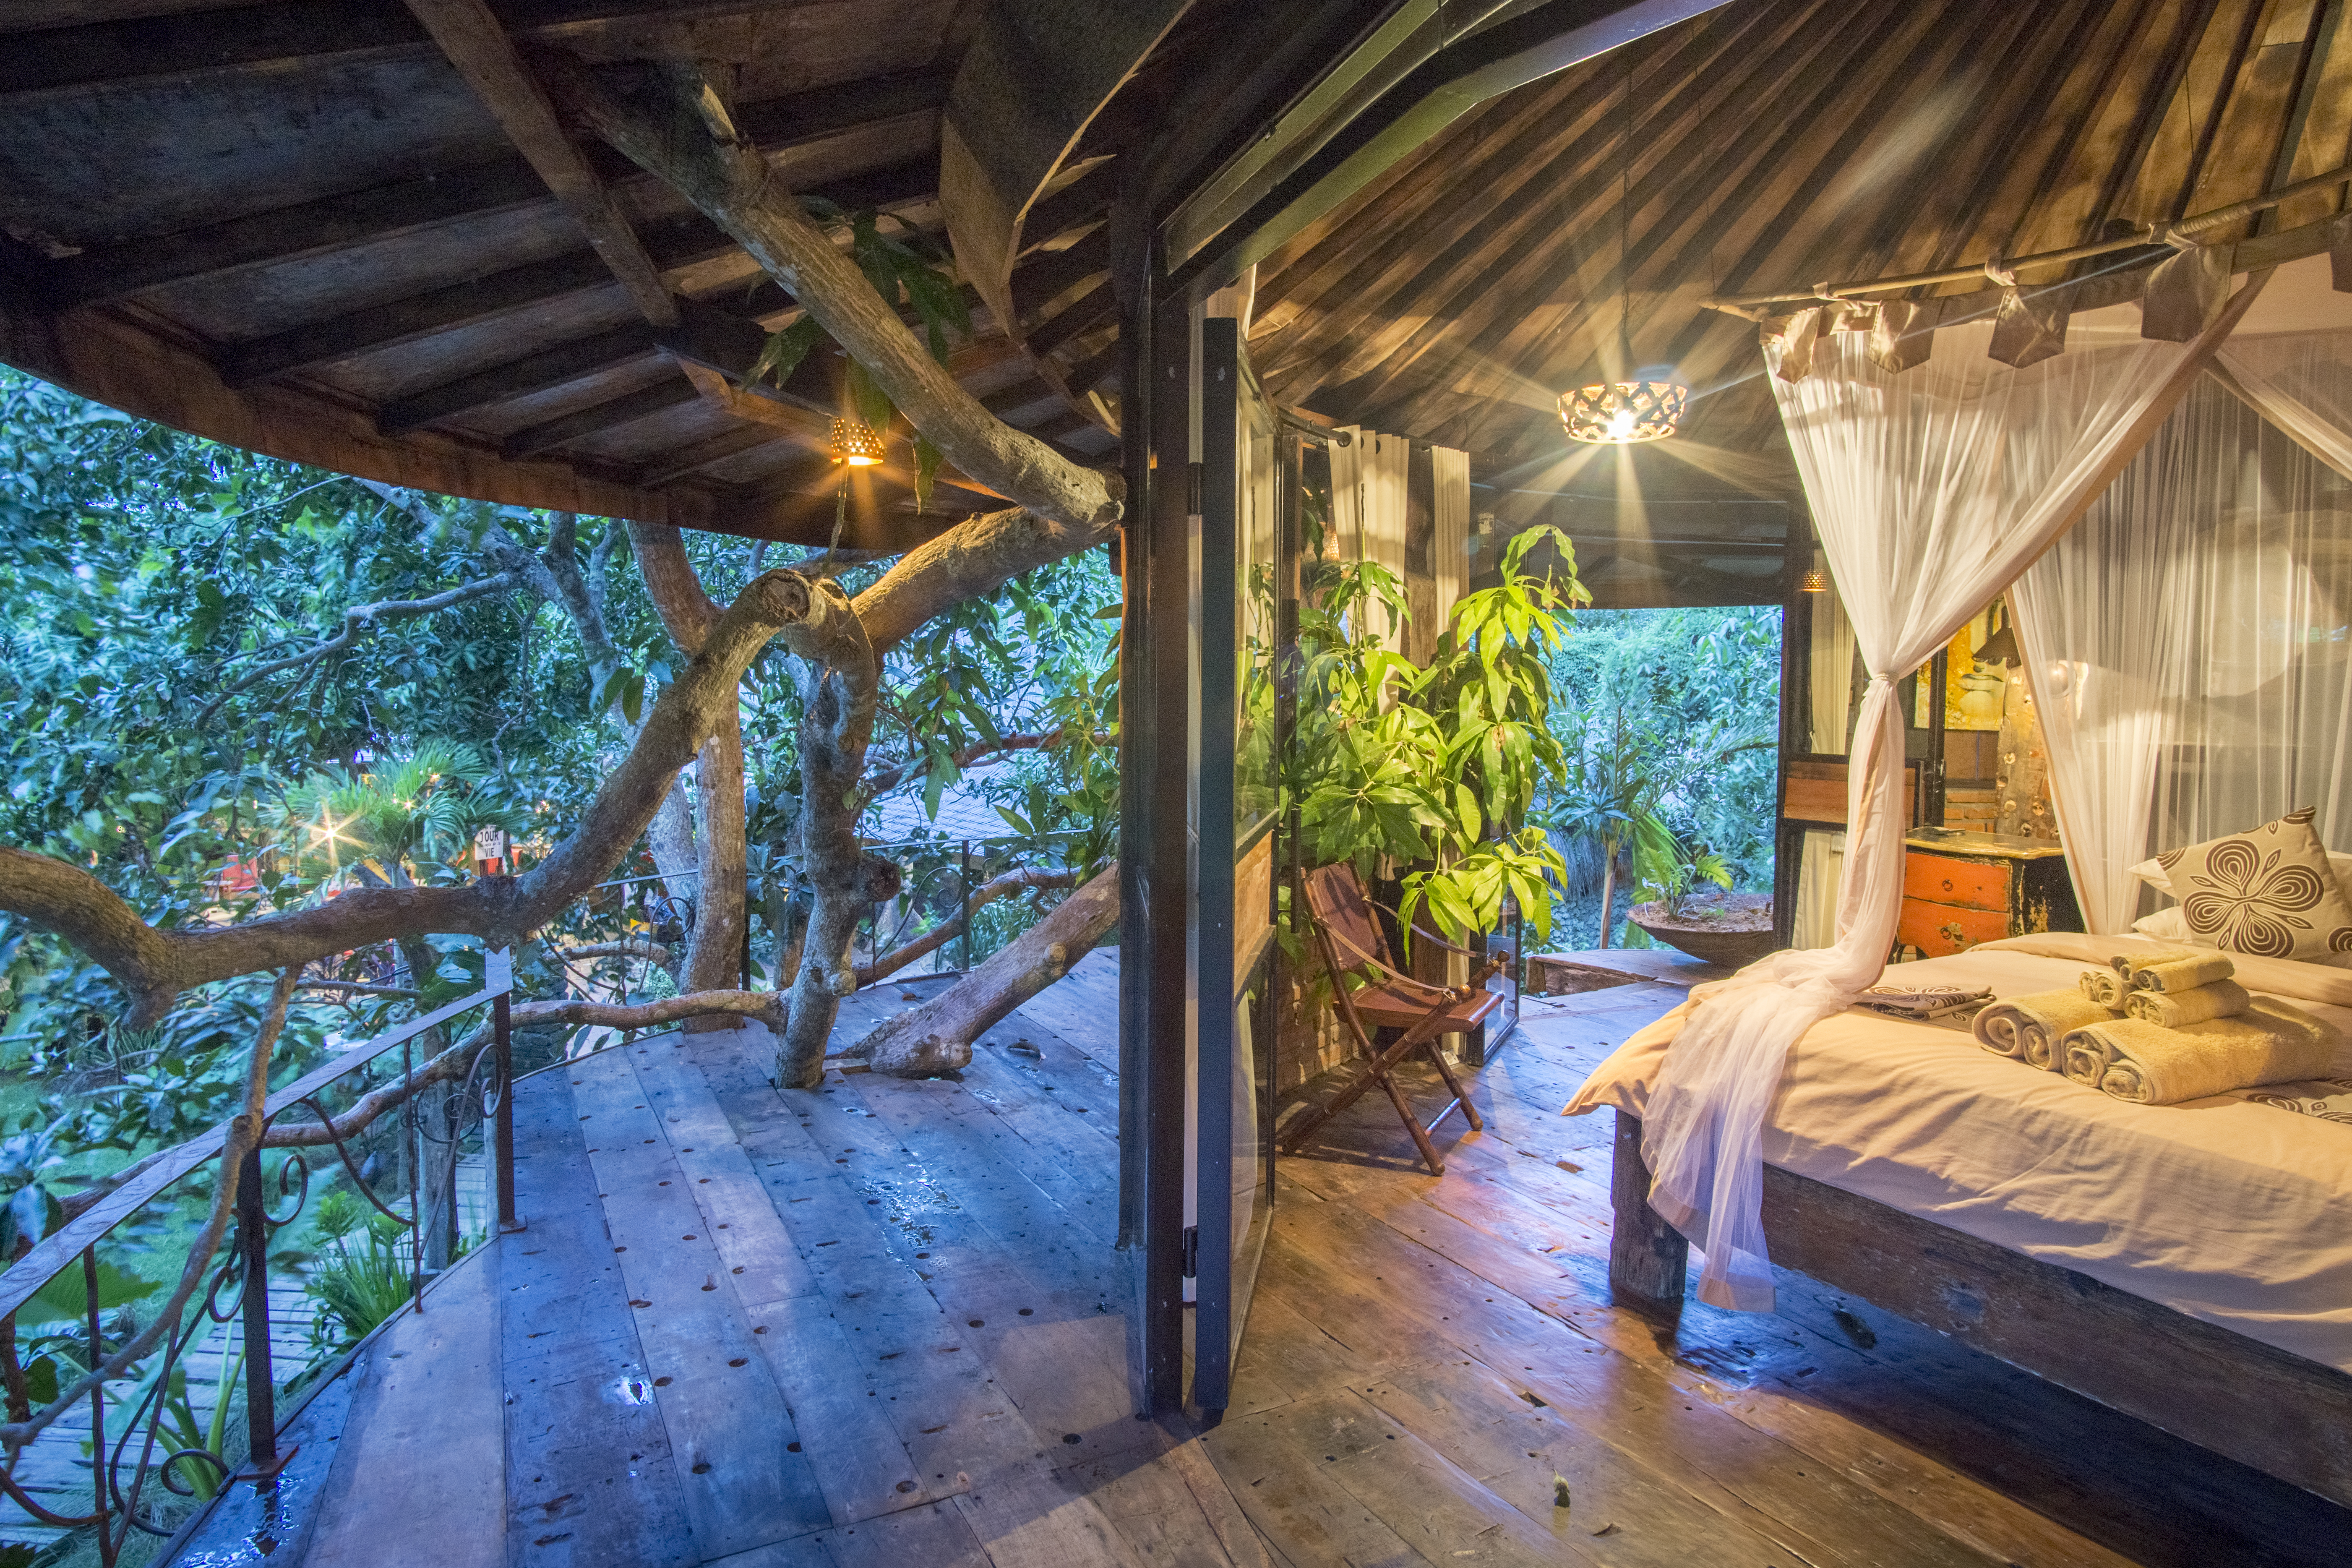 Magical Vintage Treehouse Treehouses For Rent In South Kuta Bali Indonesia